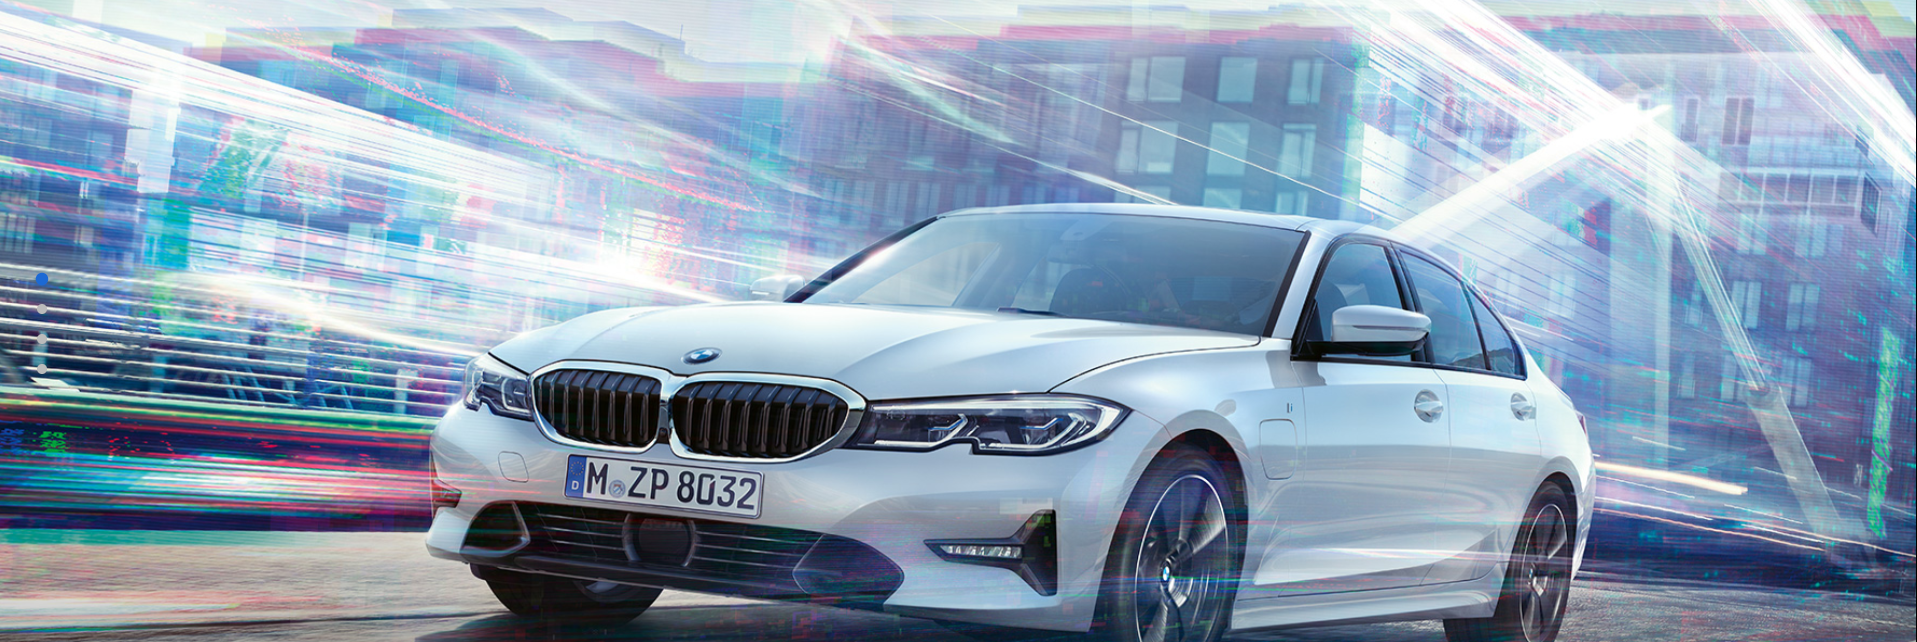 BMW 3 Series driving in the city with a futuristic design